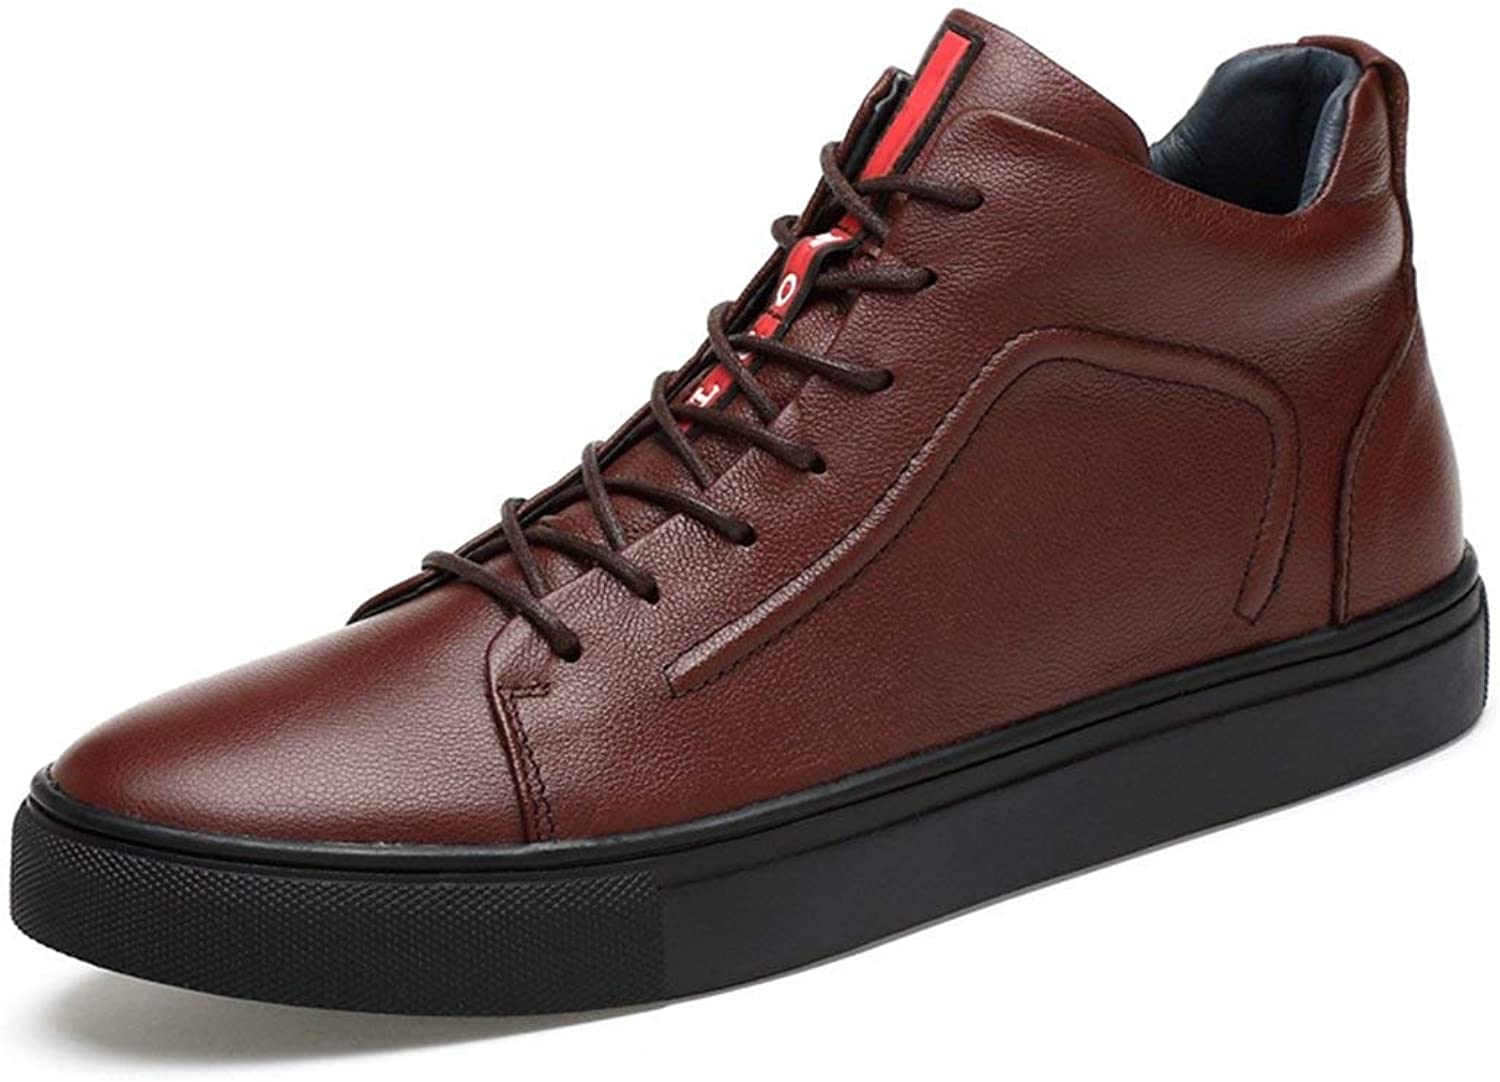 ZHRUI Boy's Men's Red Stripe Padded Fashion Chukka Ankle Boots (color   Brown, Size   5.5 UK)